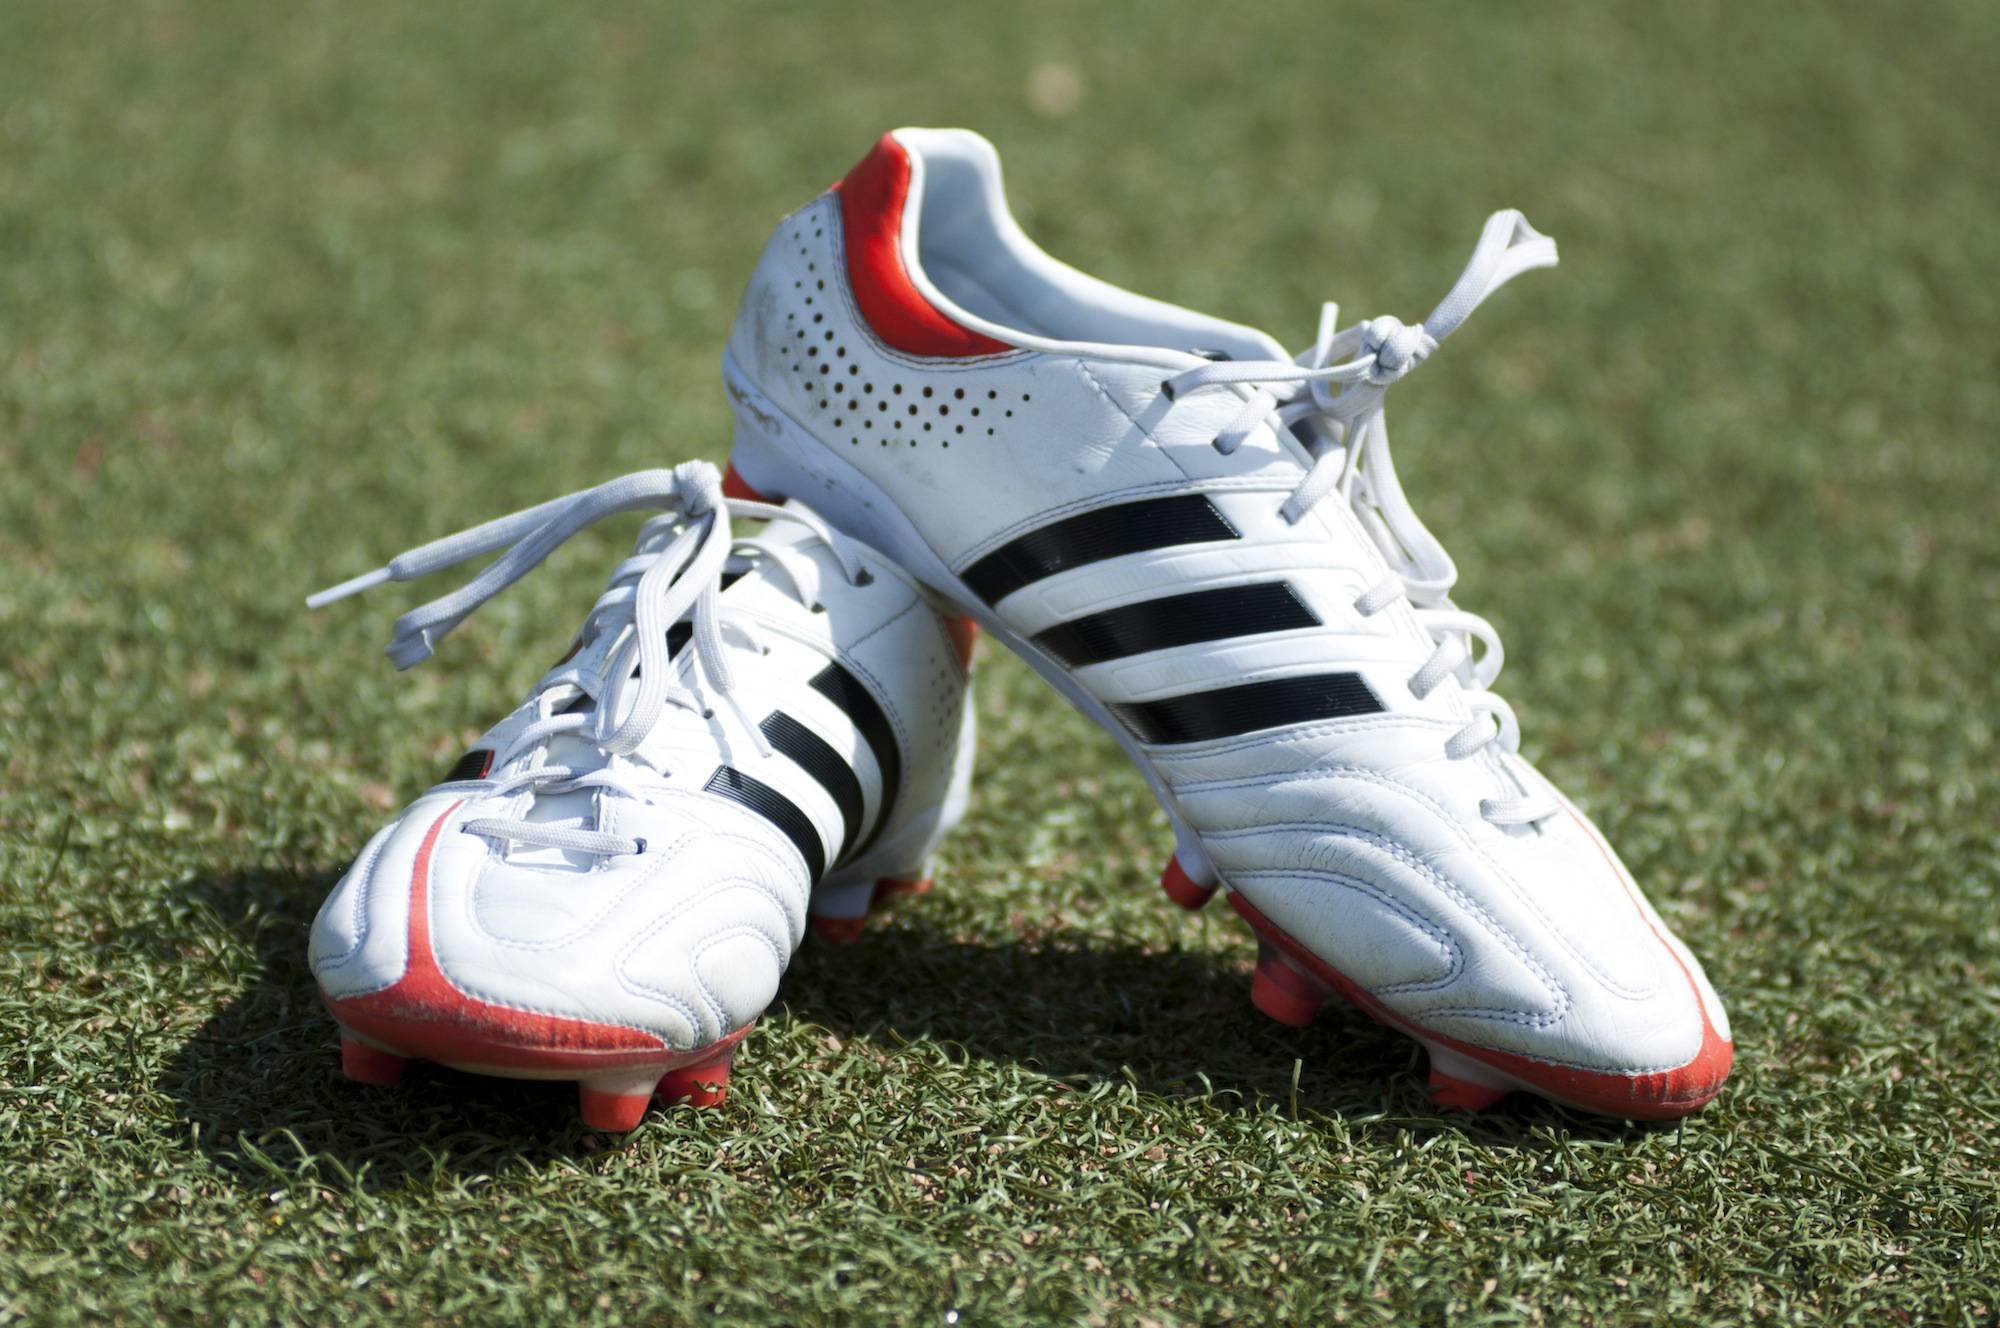 Adidas predator top latest shoes   Adidas Wallpaper 2000x1328